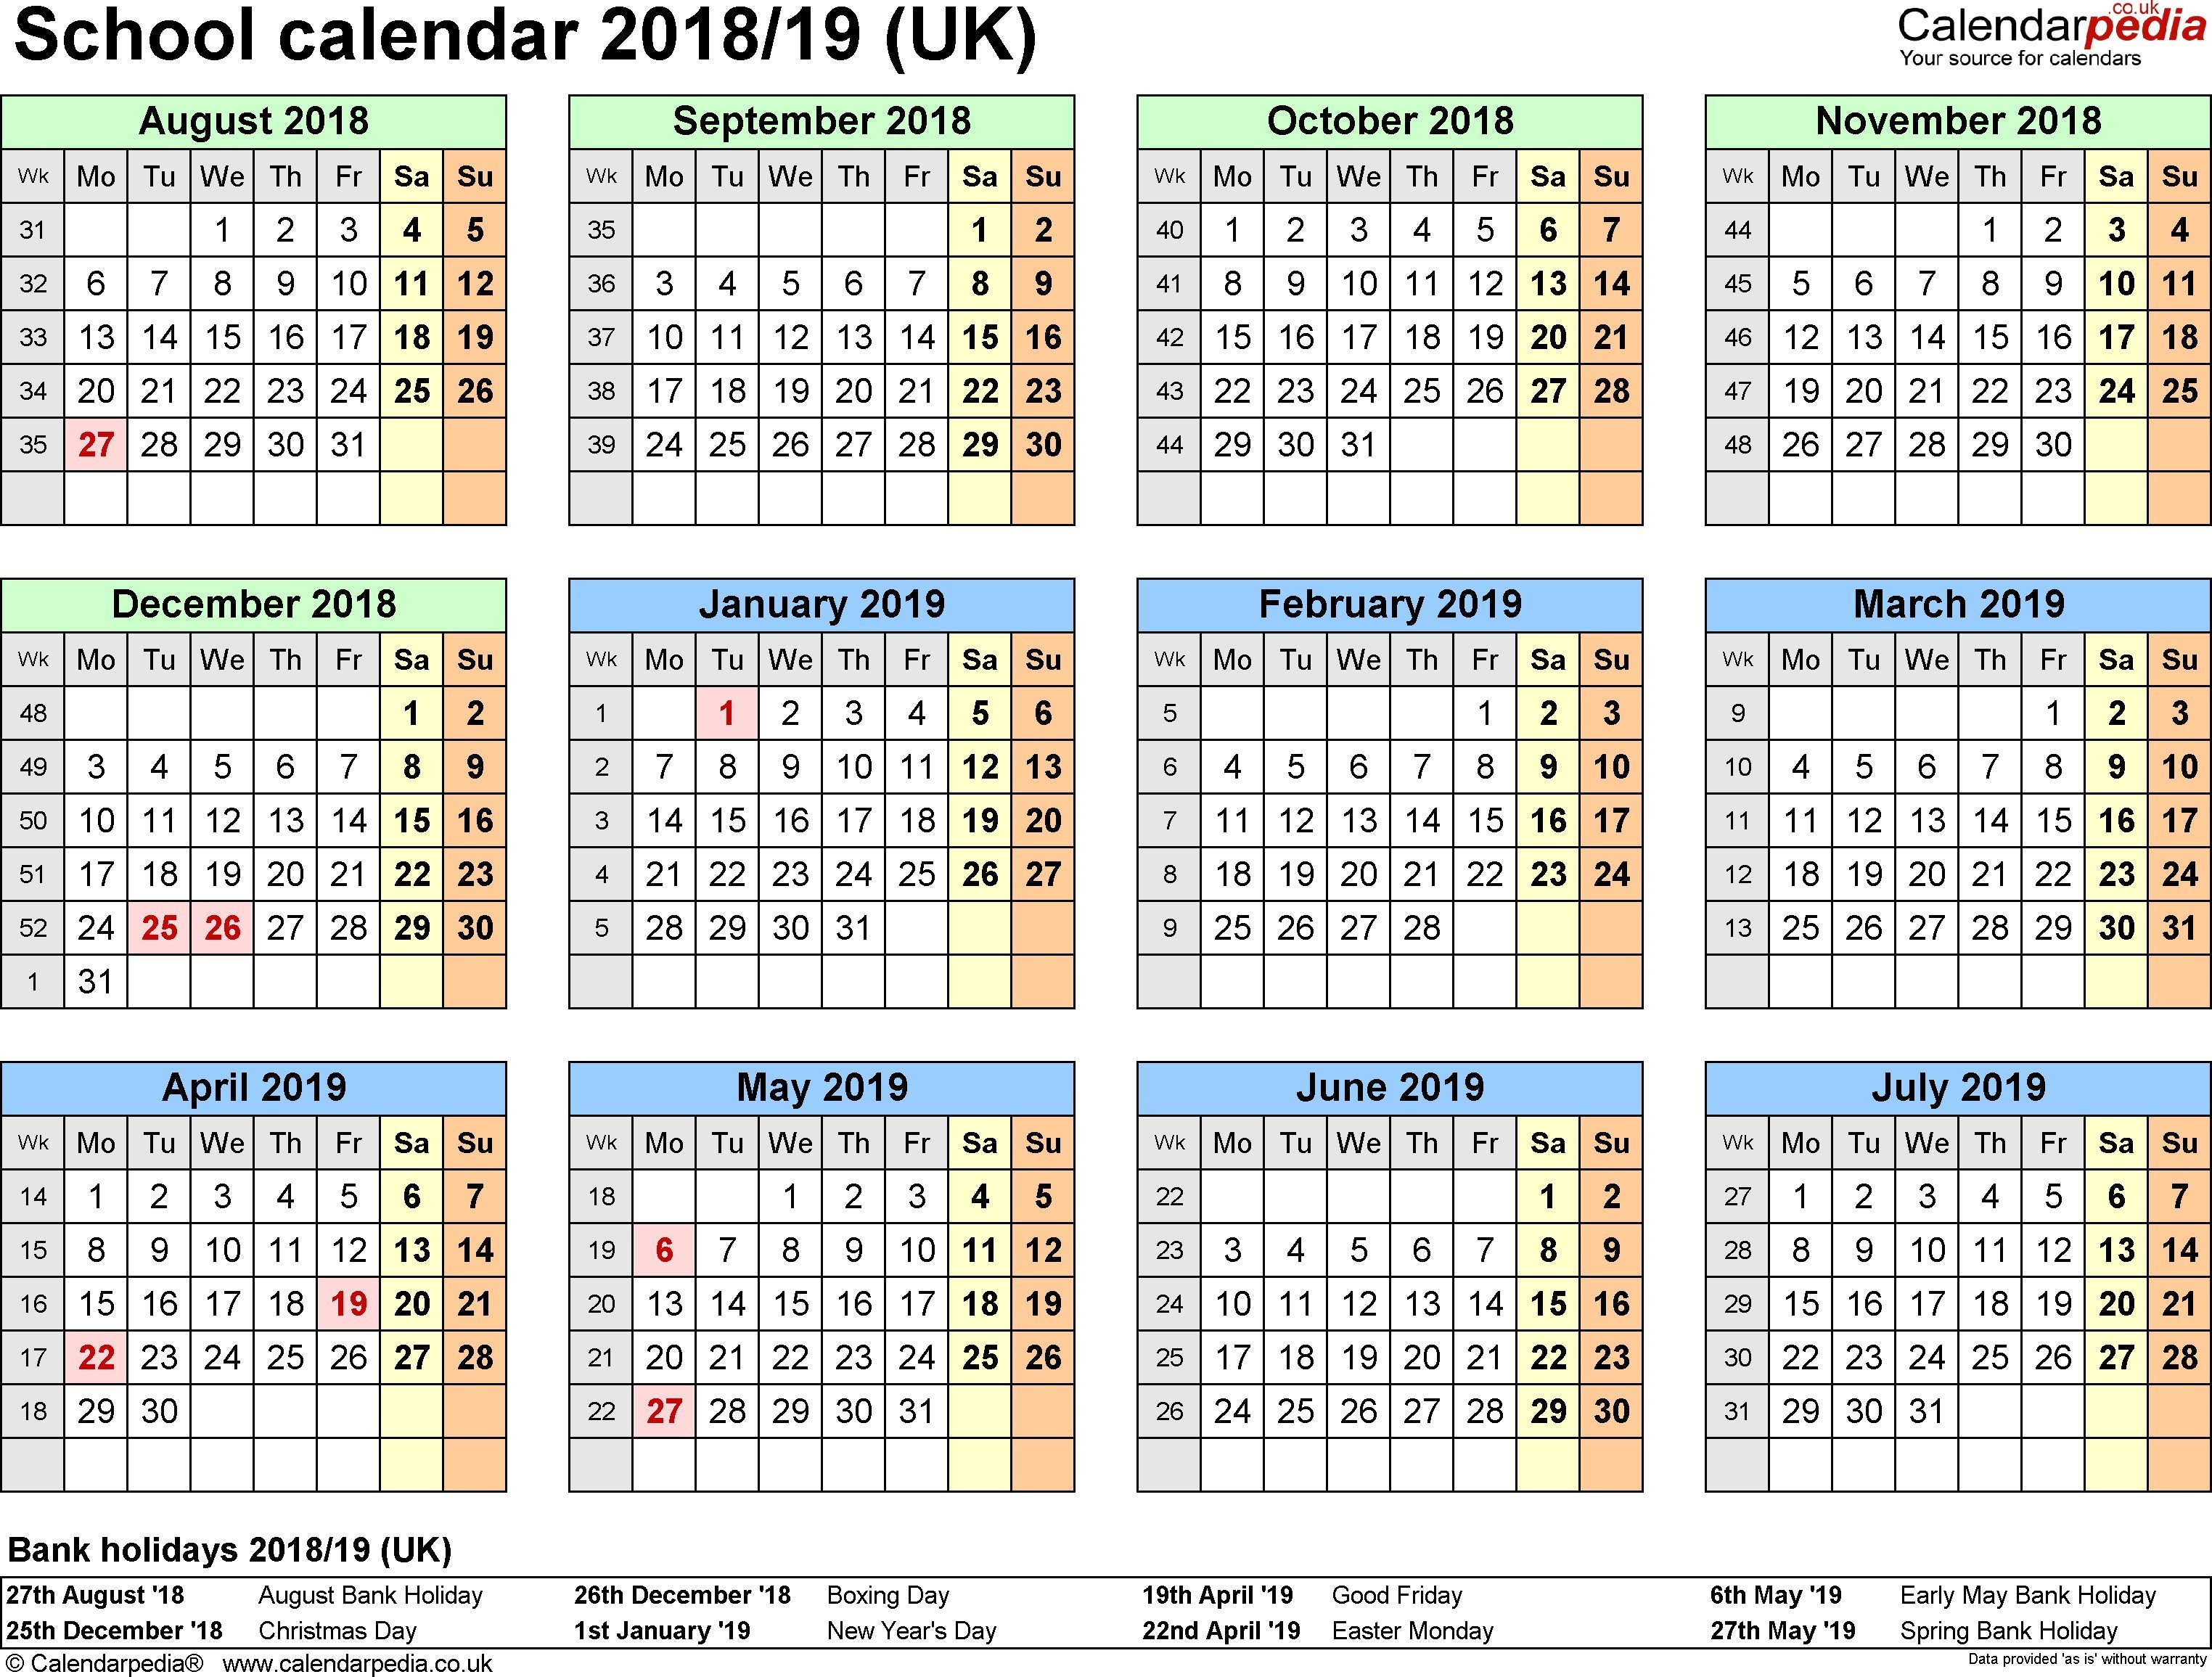 2019 March Calendar Kalnirnay Más Actual August 2106 Calendar Lara Expolicenciaslatam Of 2019 March Calendar Kalnirnay Más Actual August 2106 Calendar Lara Expolicenciaslatam